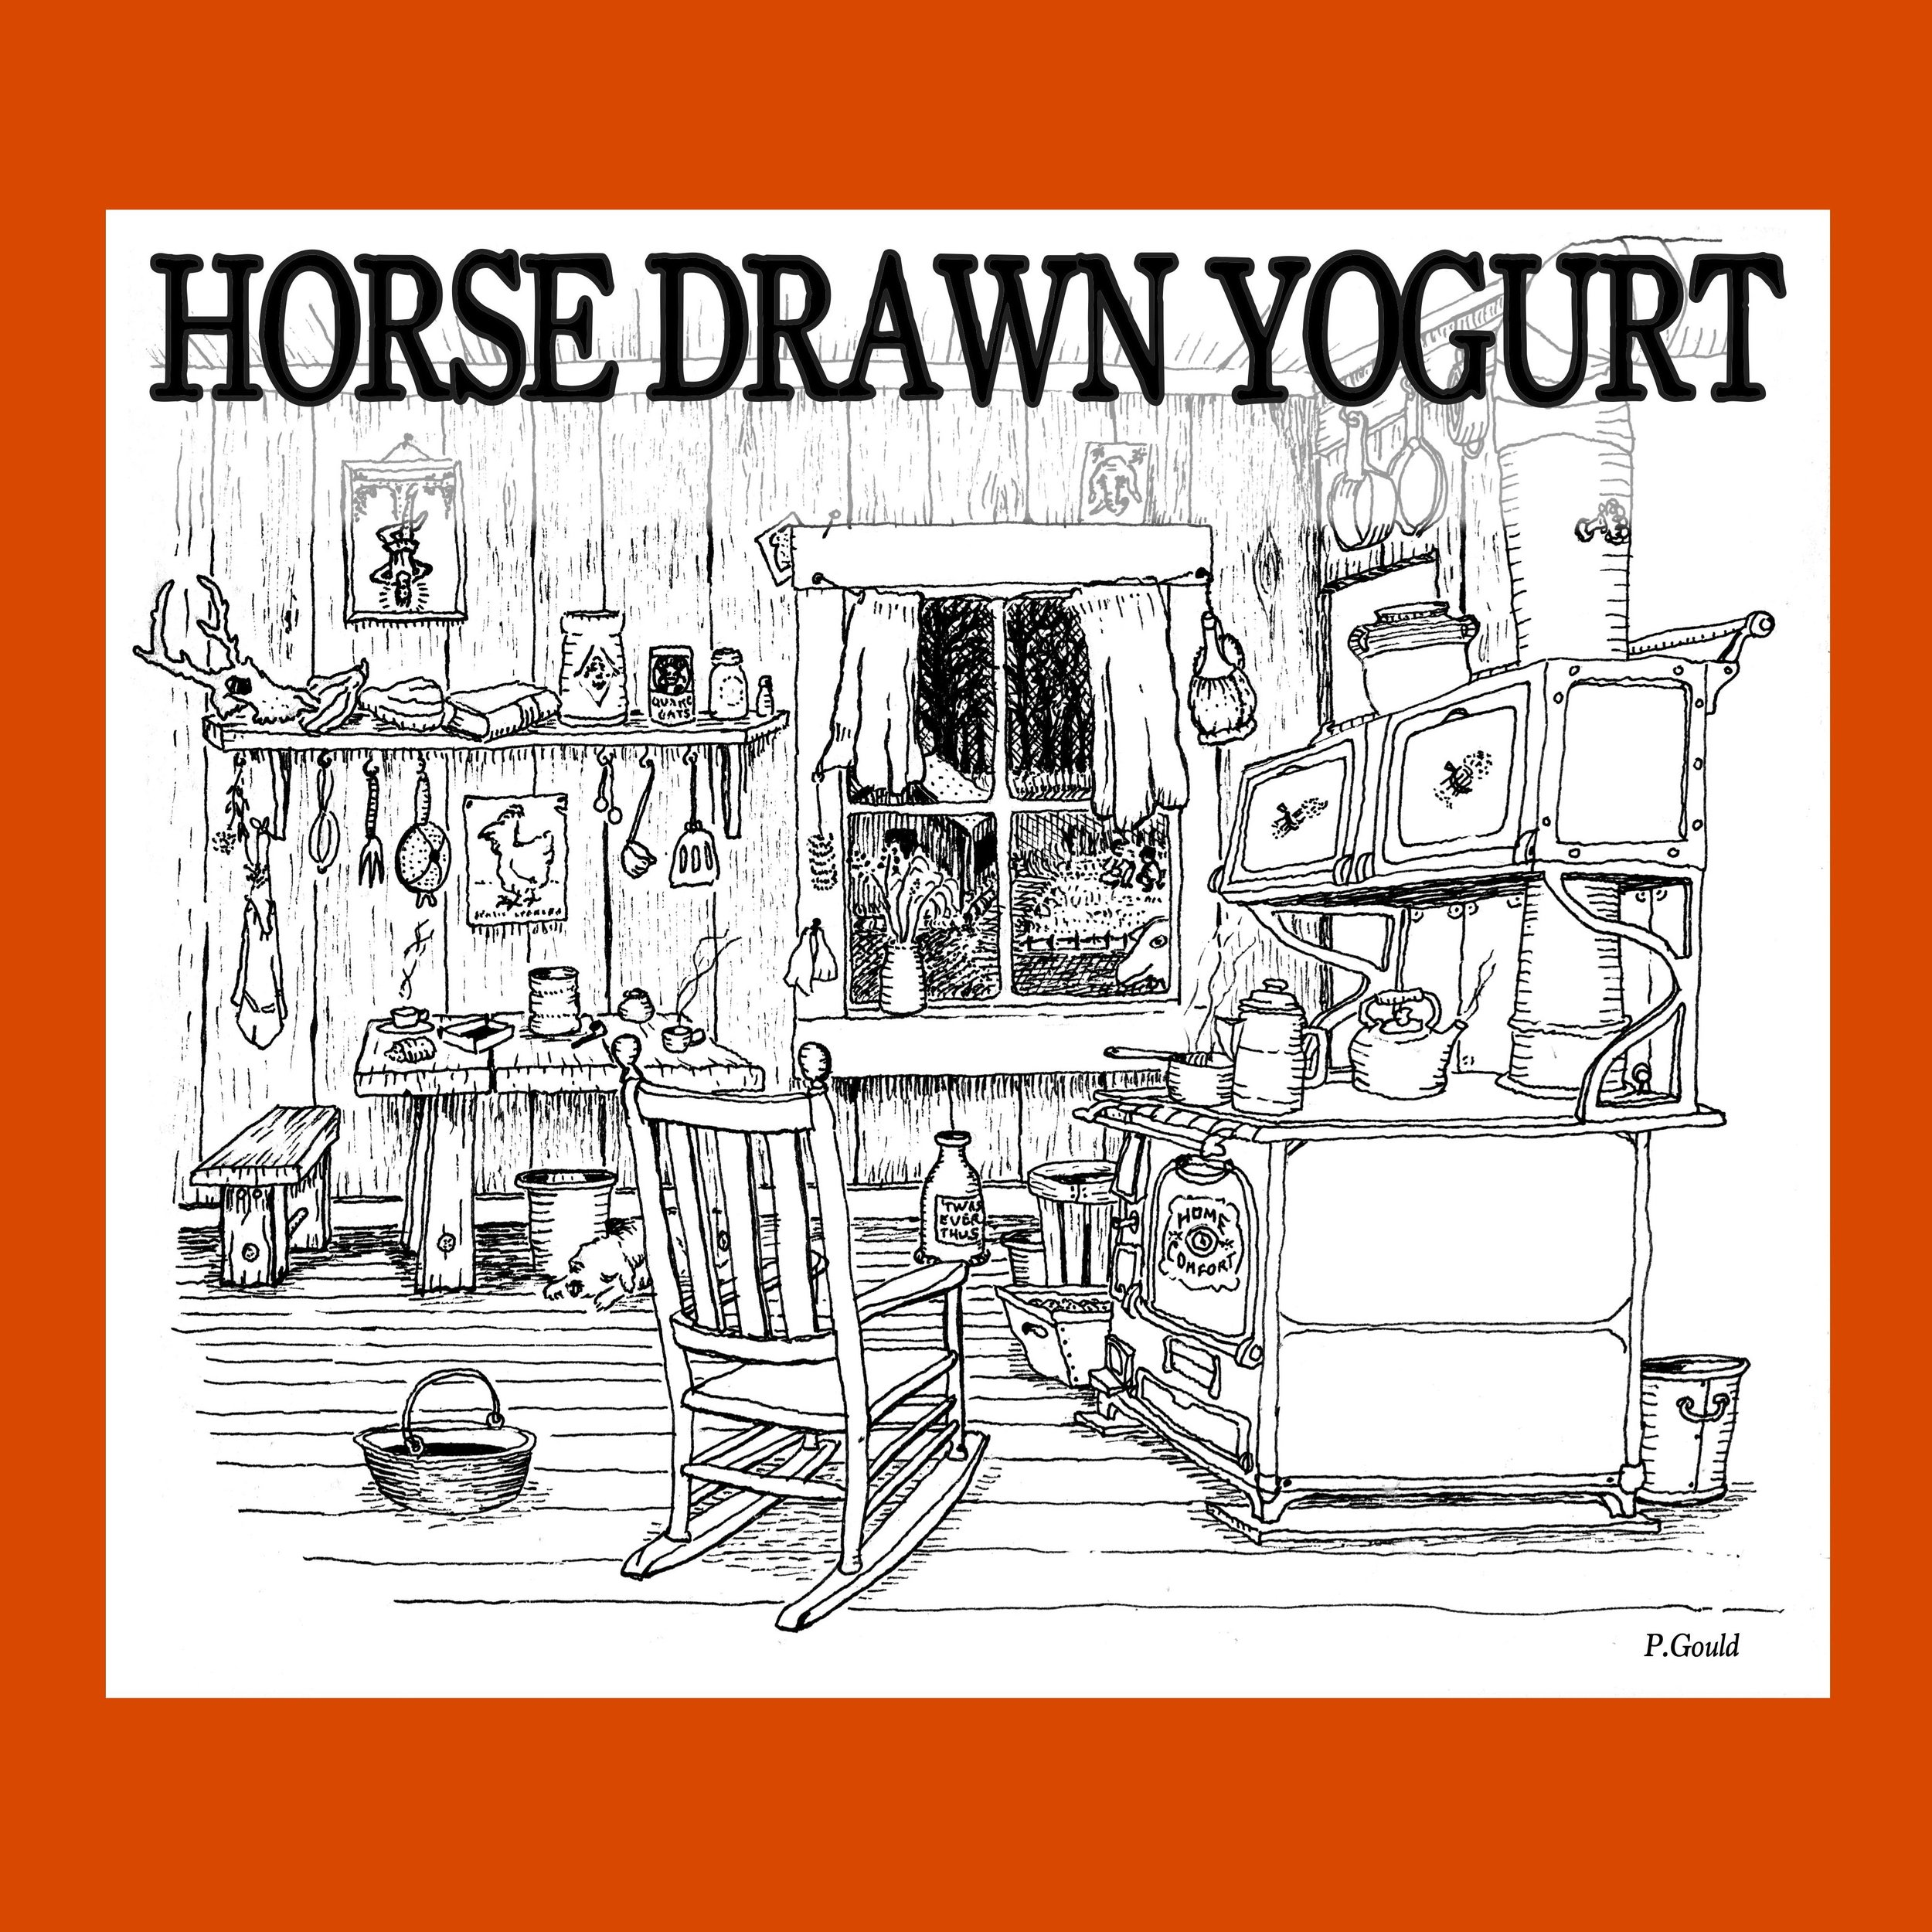 Alumni Anniversary Production - HORSE DRAWN YOGURTWritten & Directed by Peter GouldPerformances:Friday, June 28th 7pm + Saturday, June 29th 7pmTickets: $10Sponsored by Prentiss Smith & Company